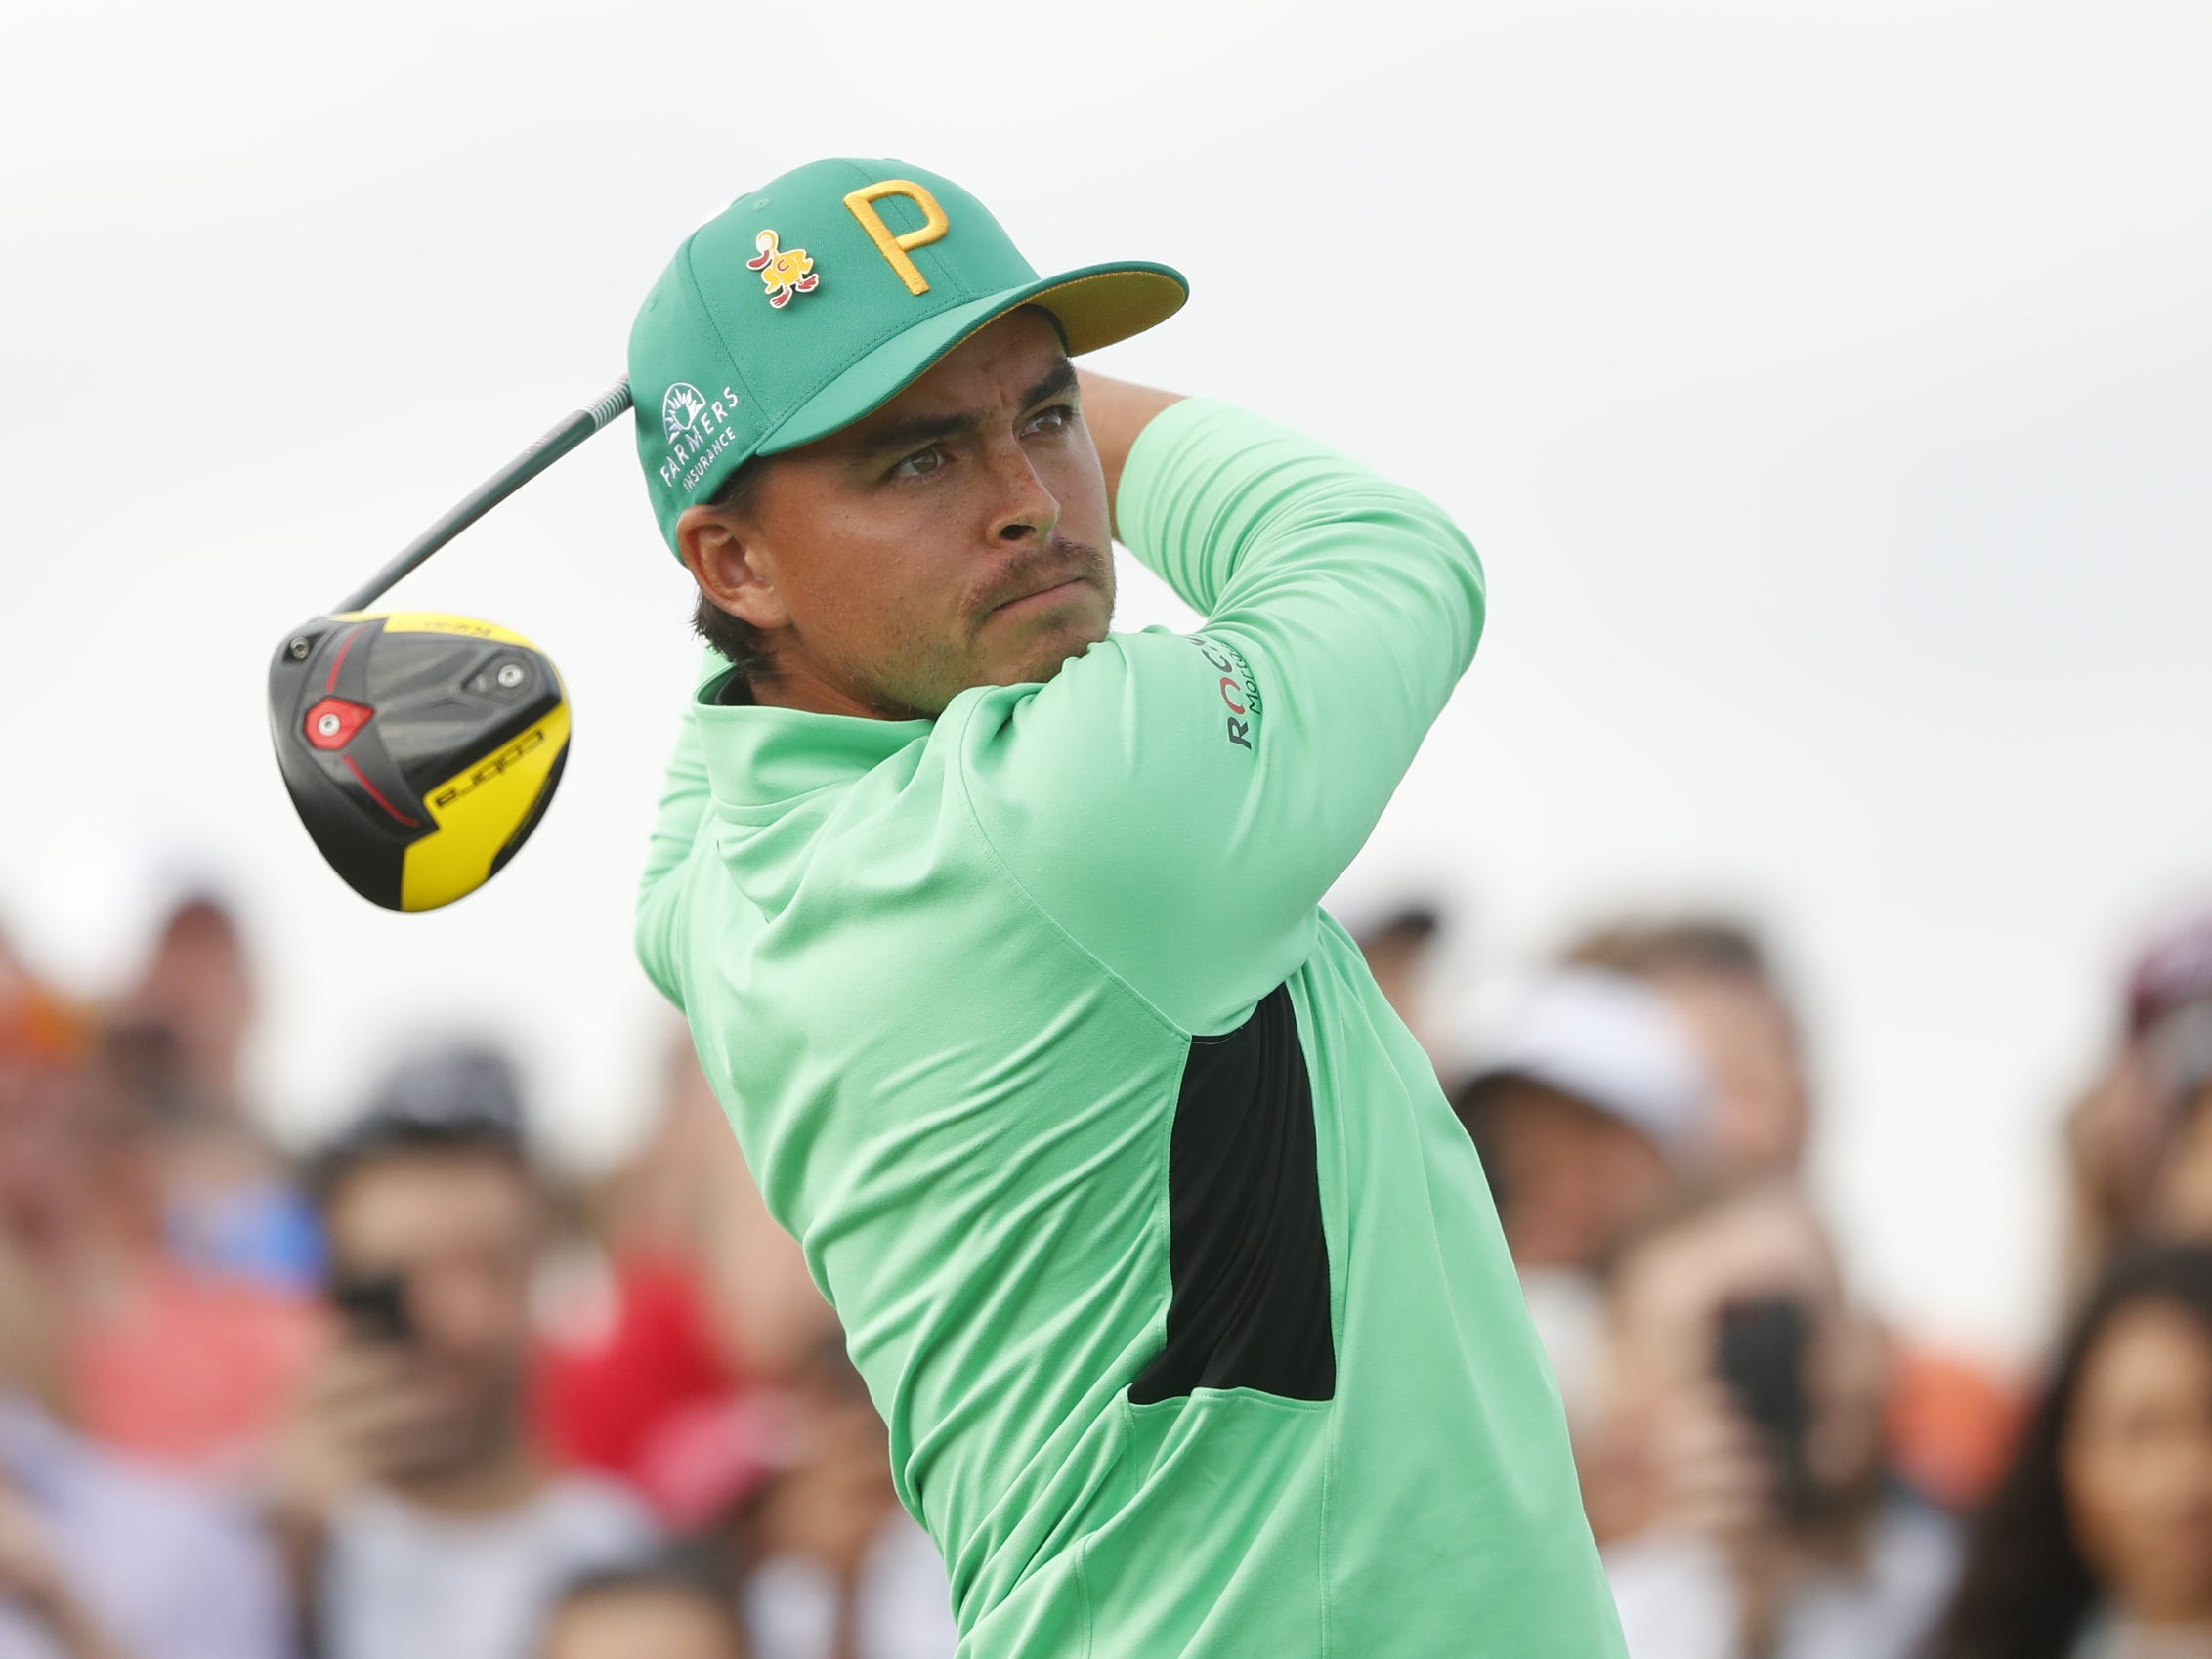 Rickie Fowler hits a tee shot on the 15th hole during the third round of the Waste Management Phoenix Open at TPC Scottsdale in Scottsdale, Ariz. on February 2, 2019.